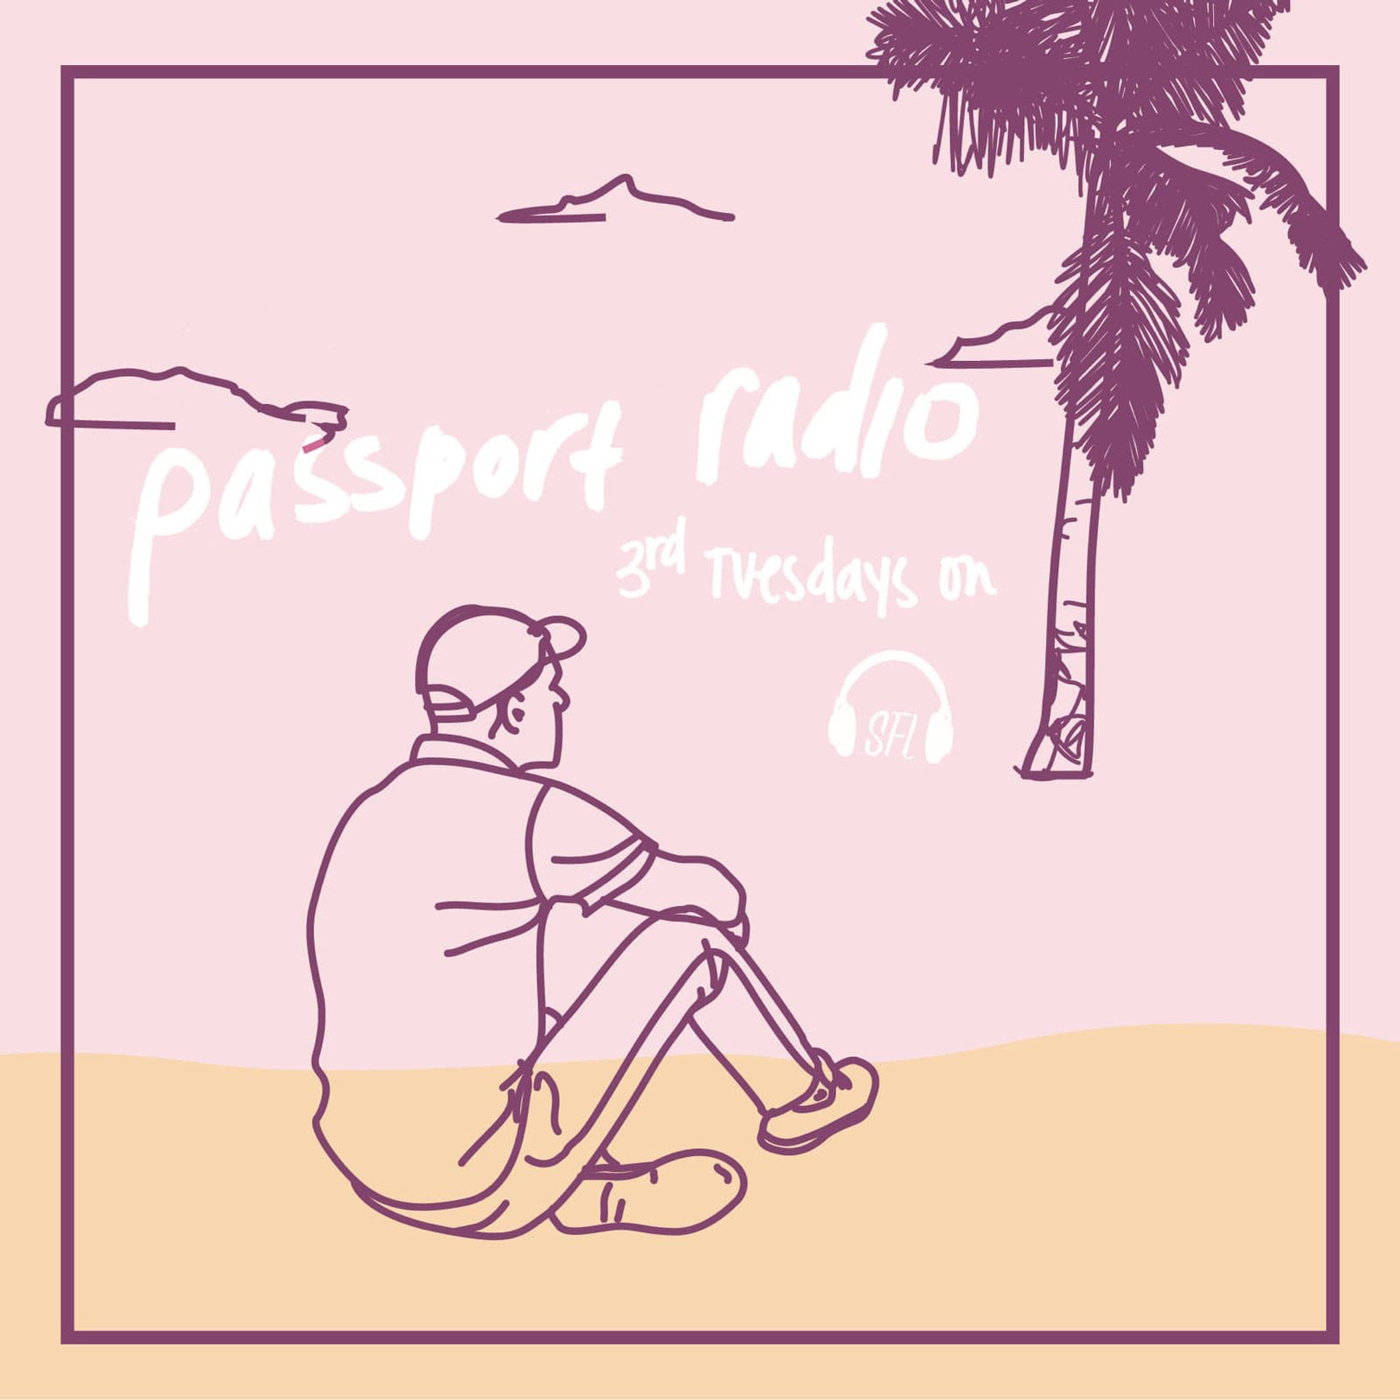 Passport Radio - 1